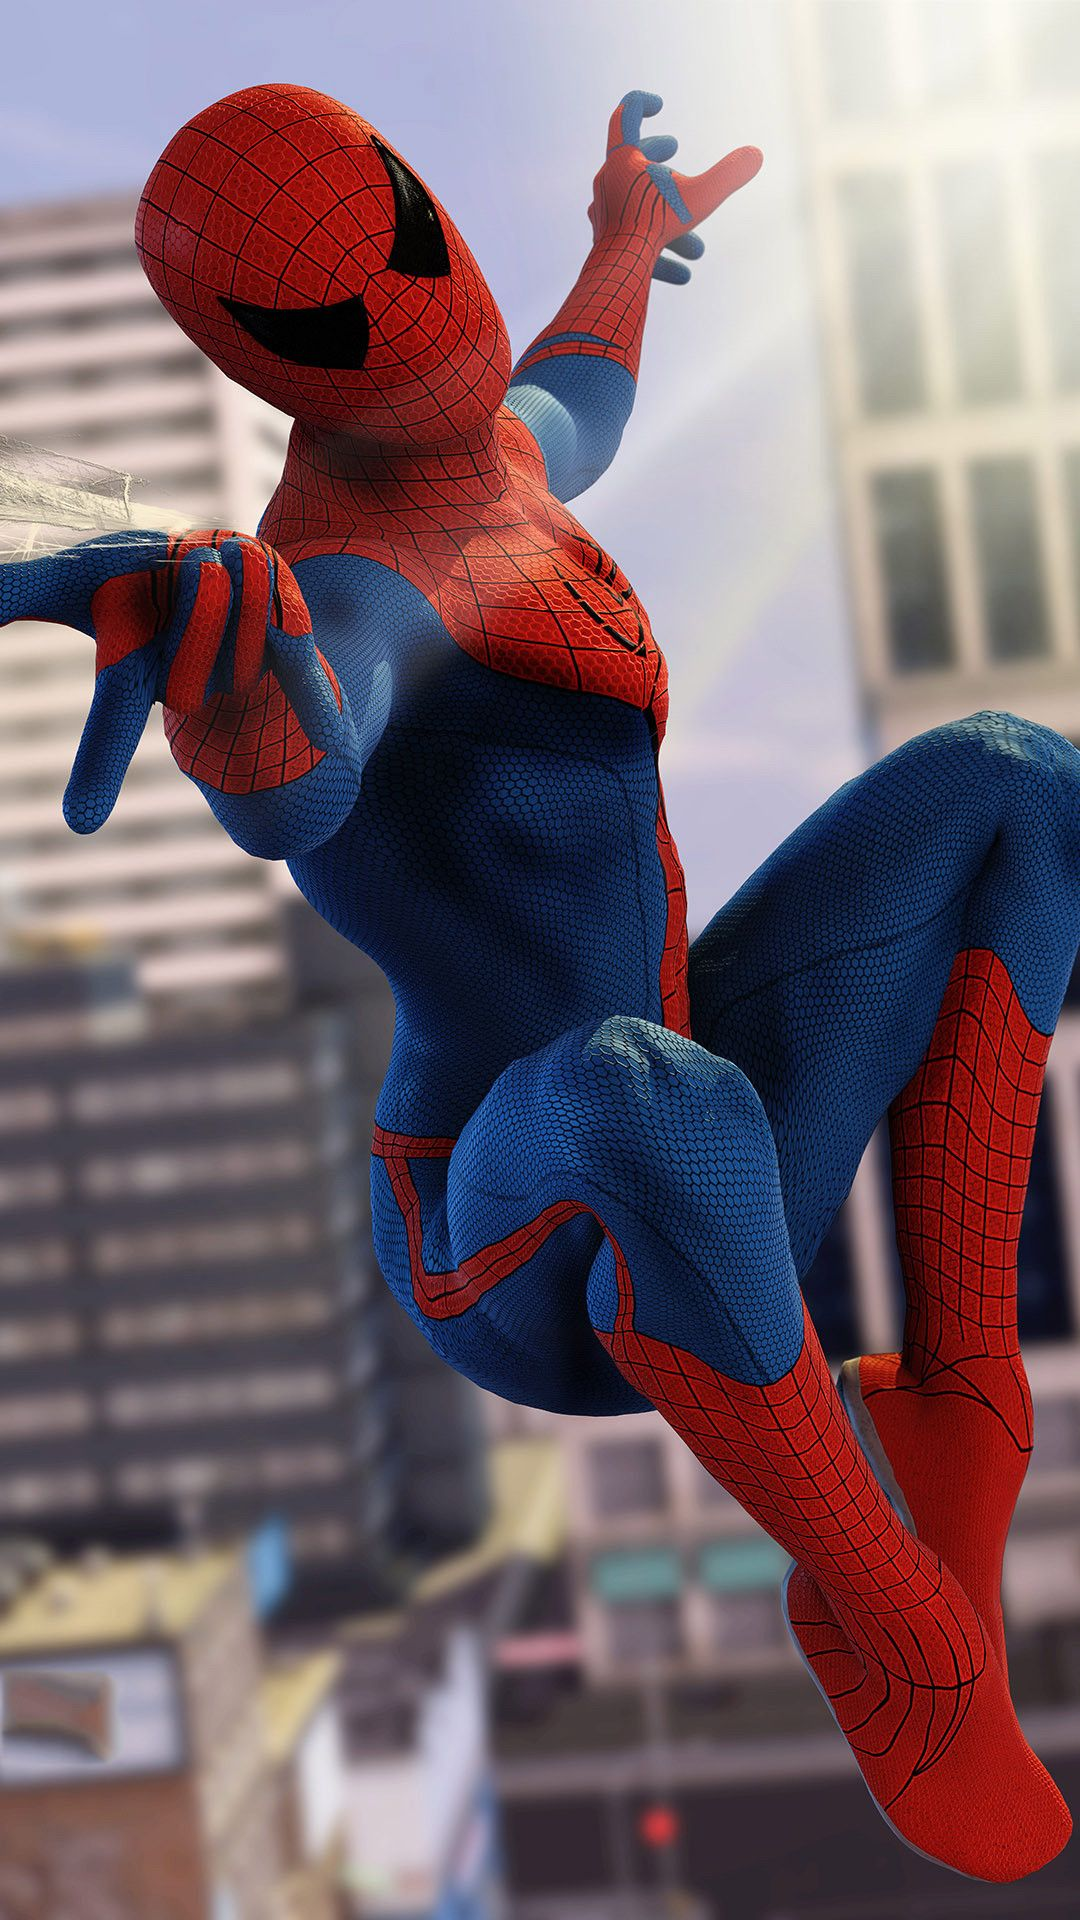 Amazing Spider Man Iphone Wallpapers Top Free Amazing Spider Man